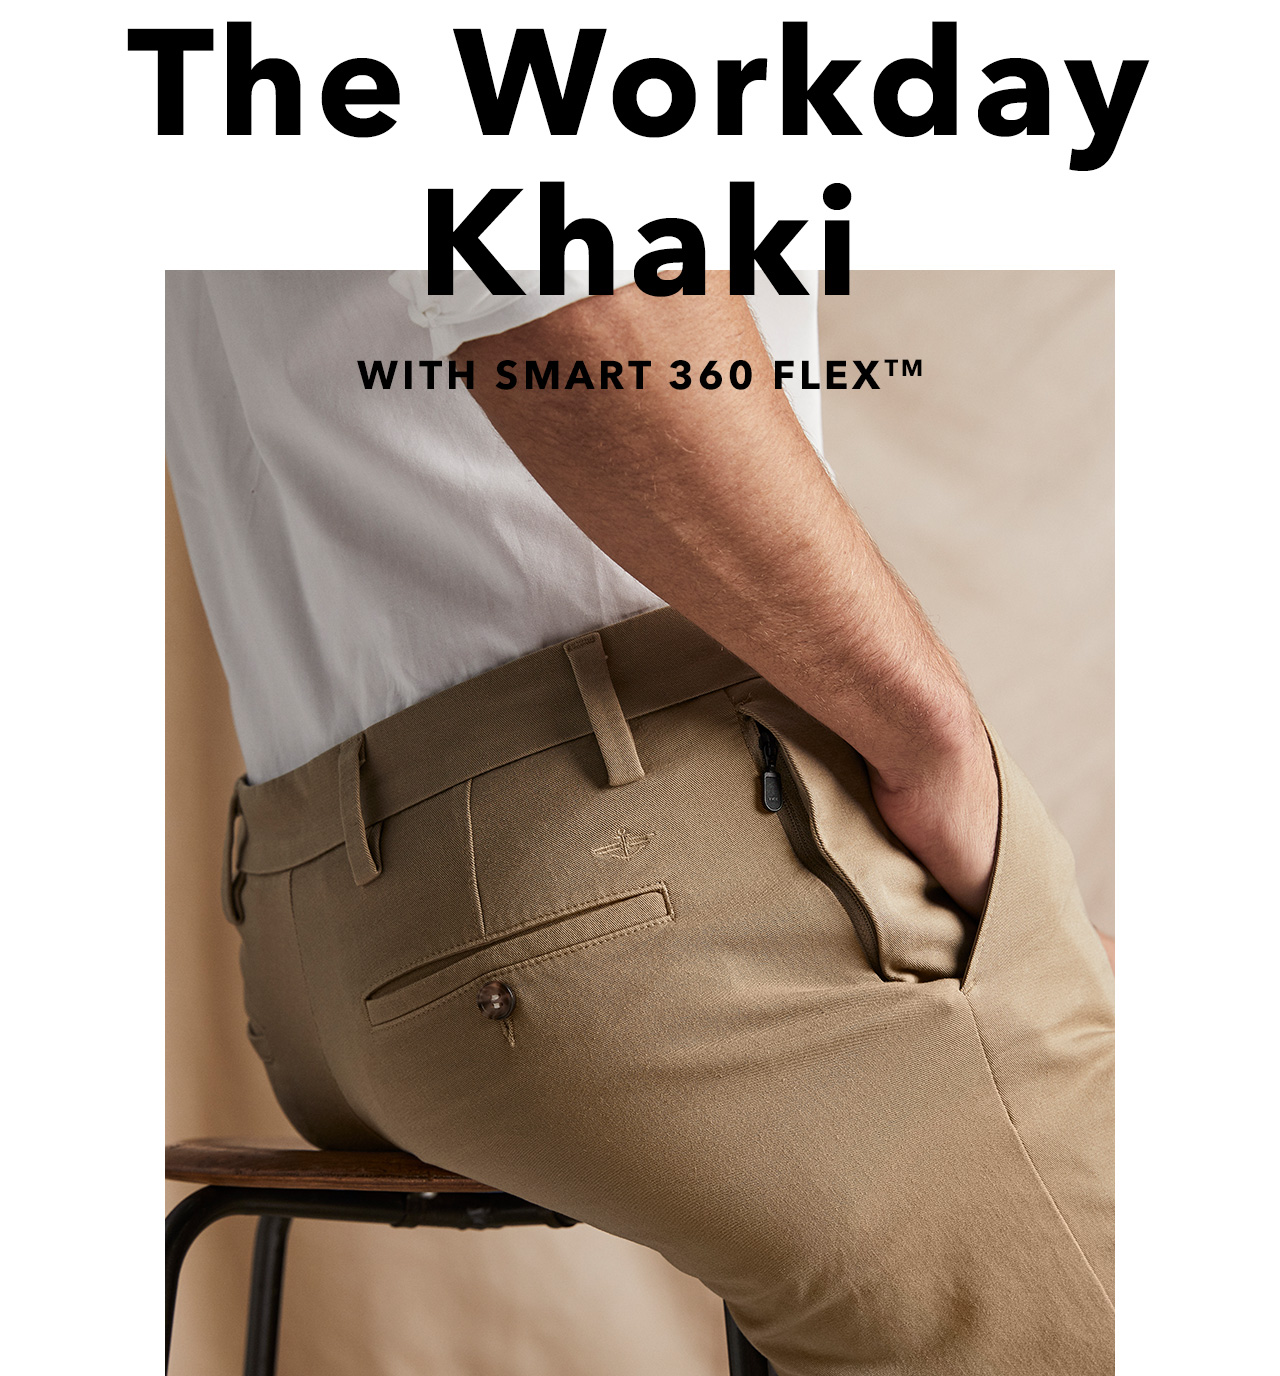 SHOP THE WORKDAY KHAKI WITH SMART 360 FLEX